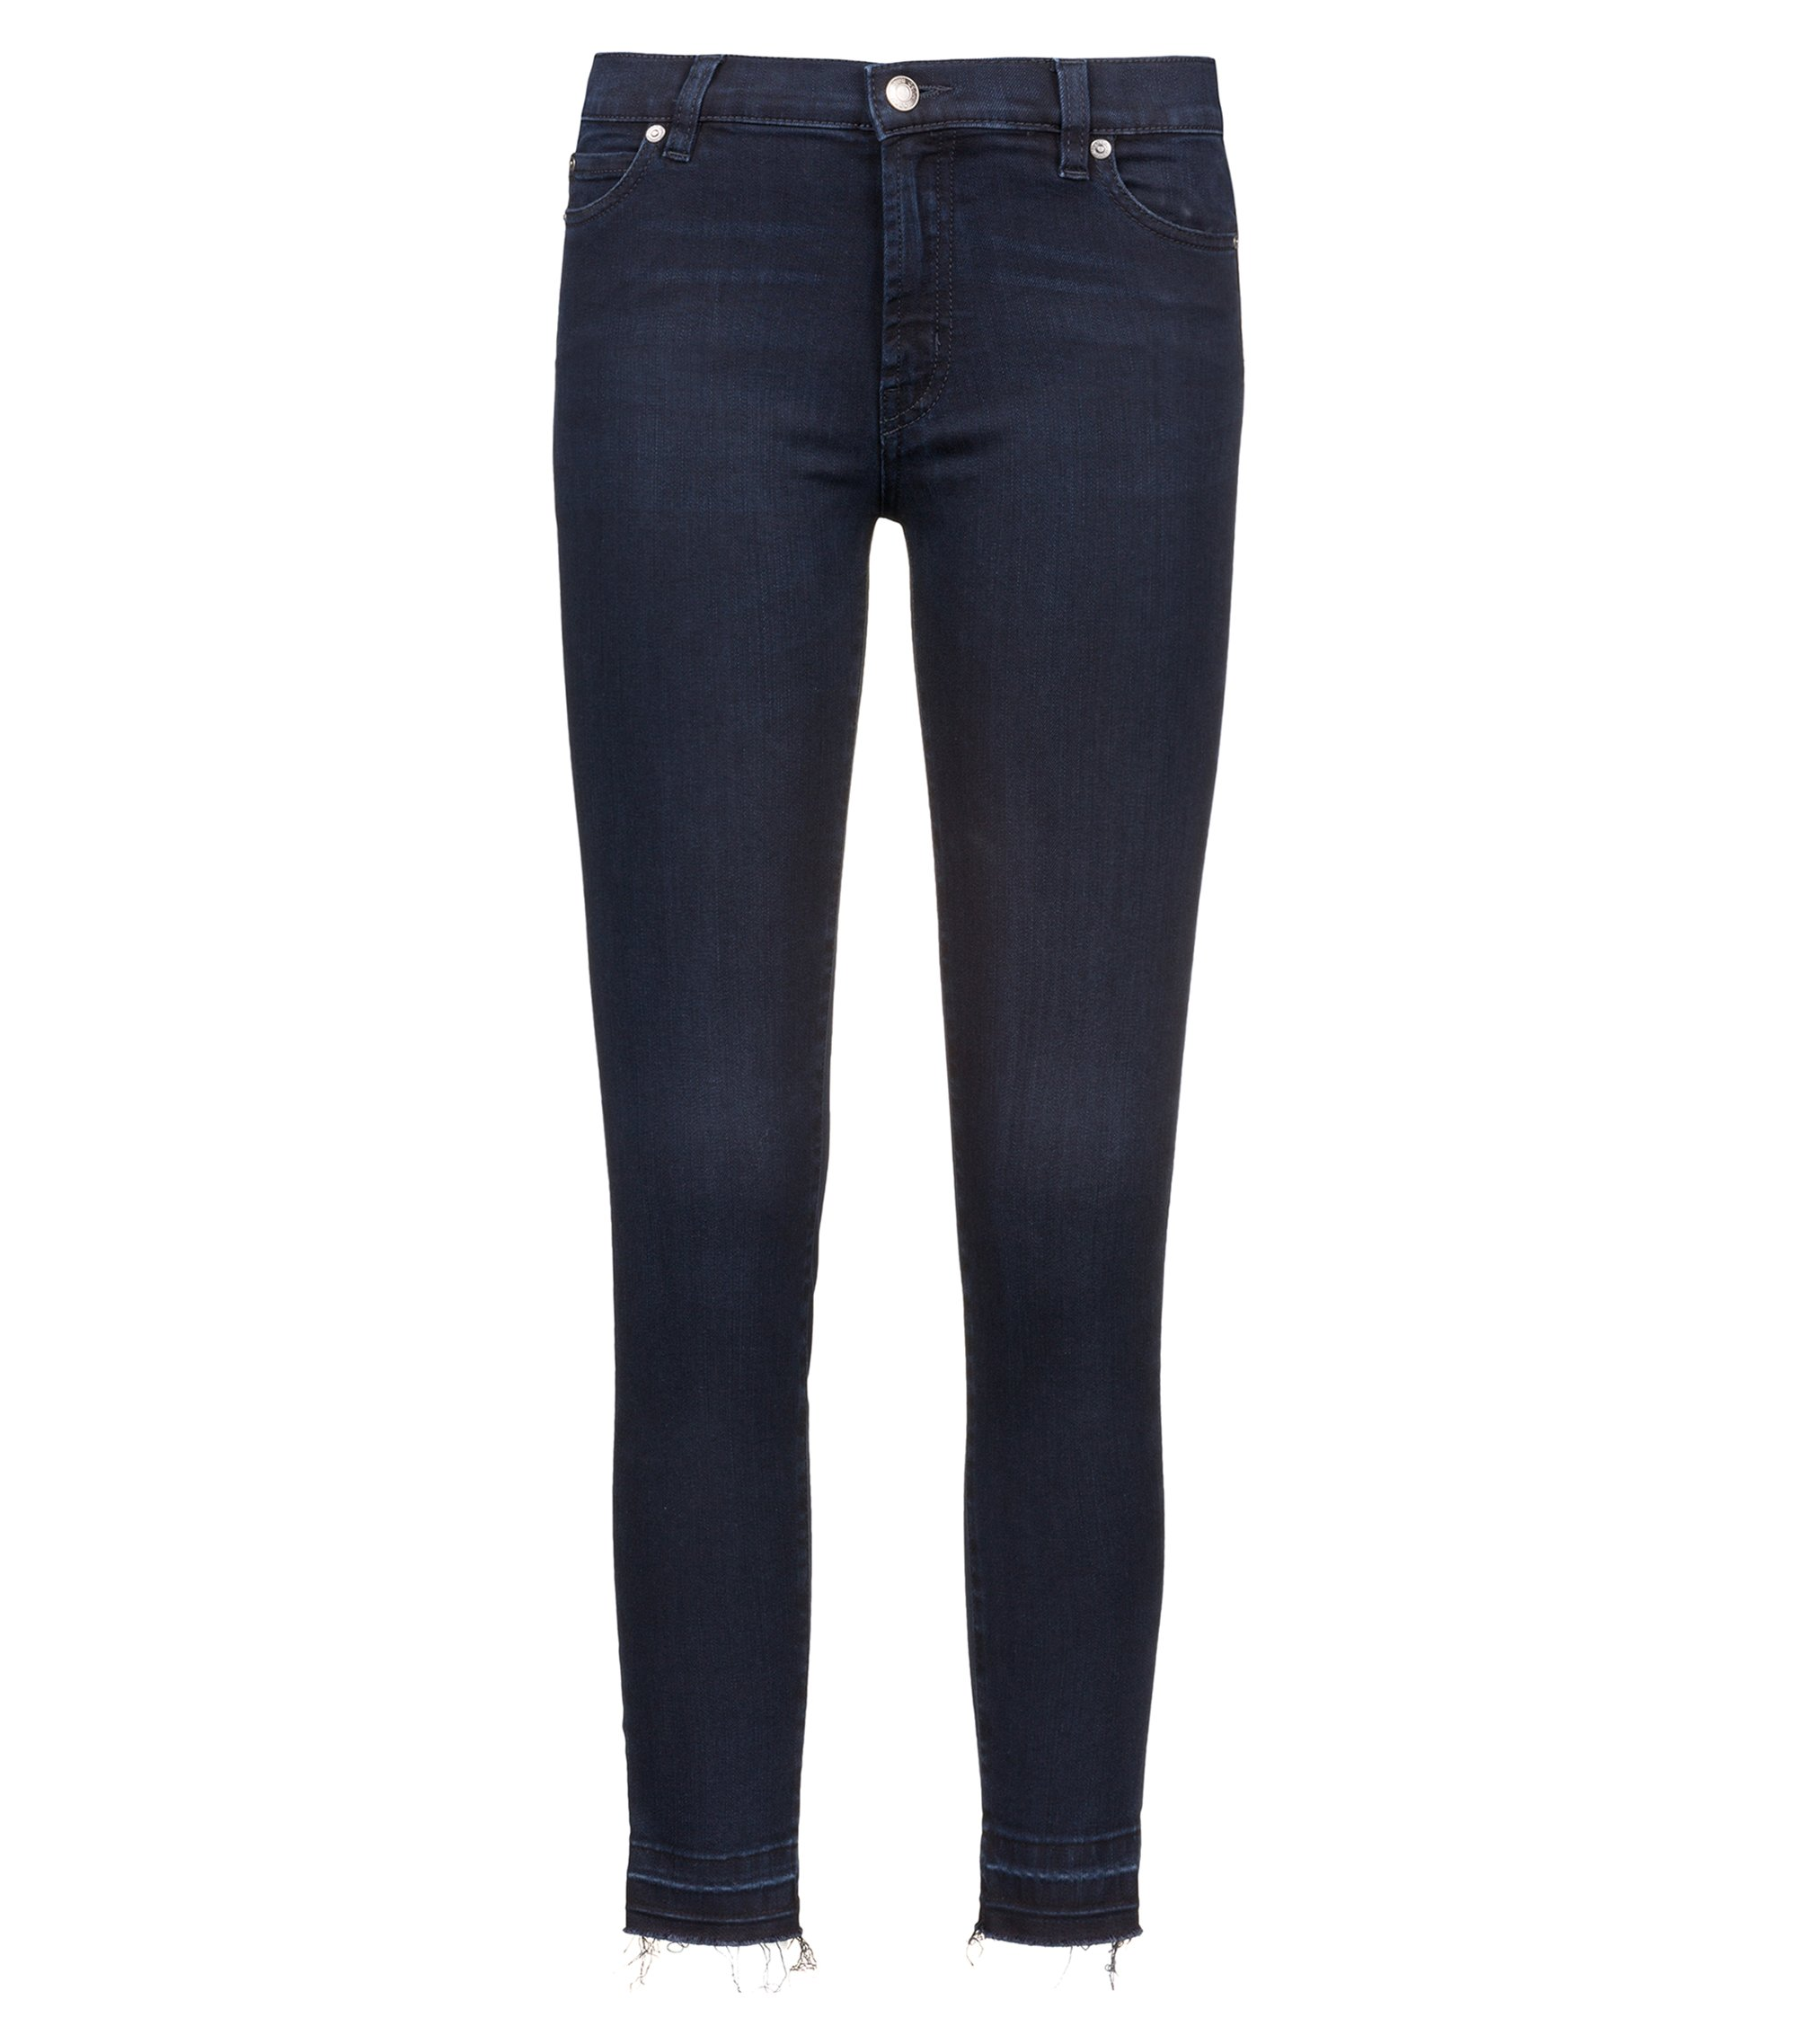 Jeans extra slim fit in denim elasticizzato con orli aperti, Blu scuro